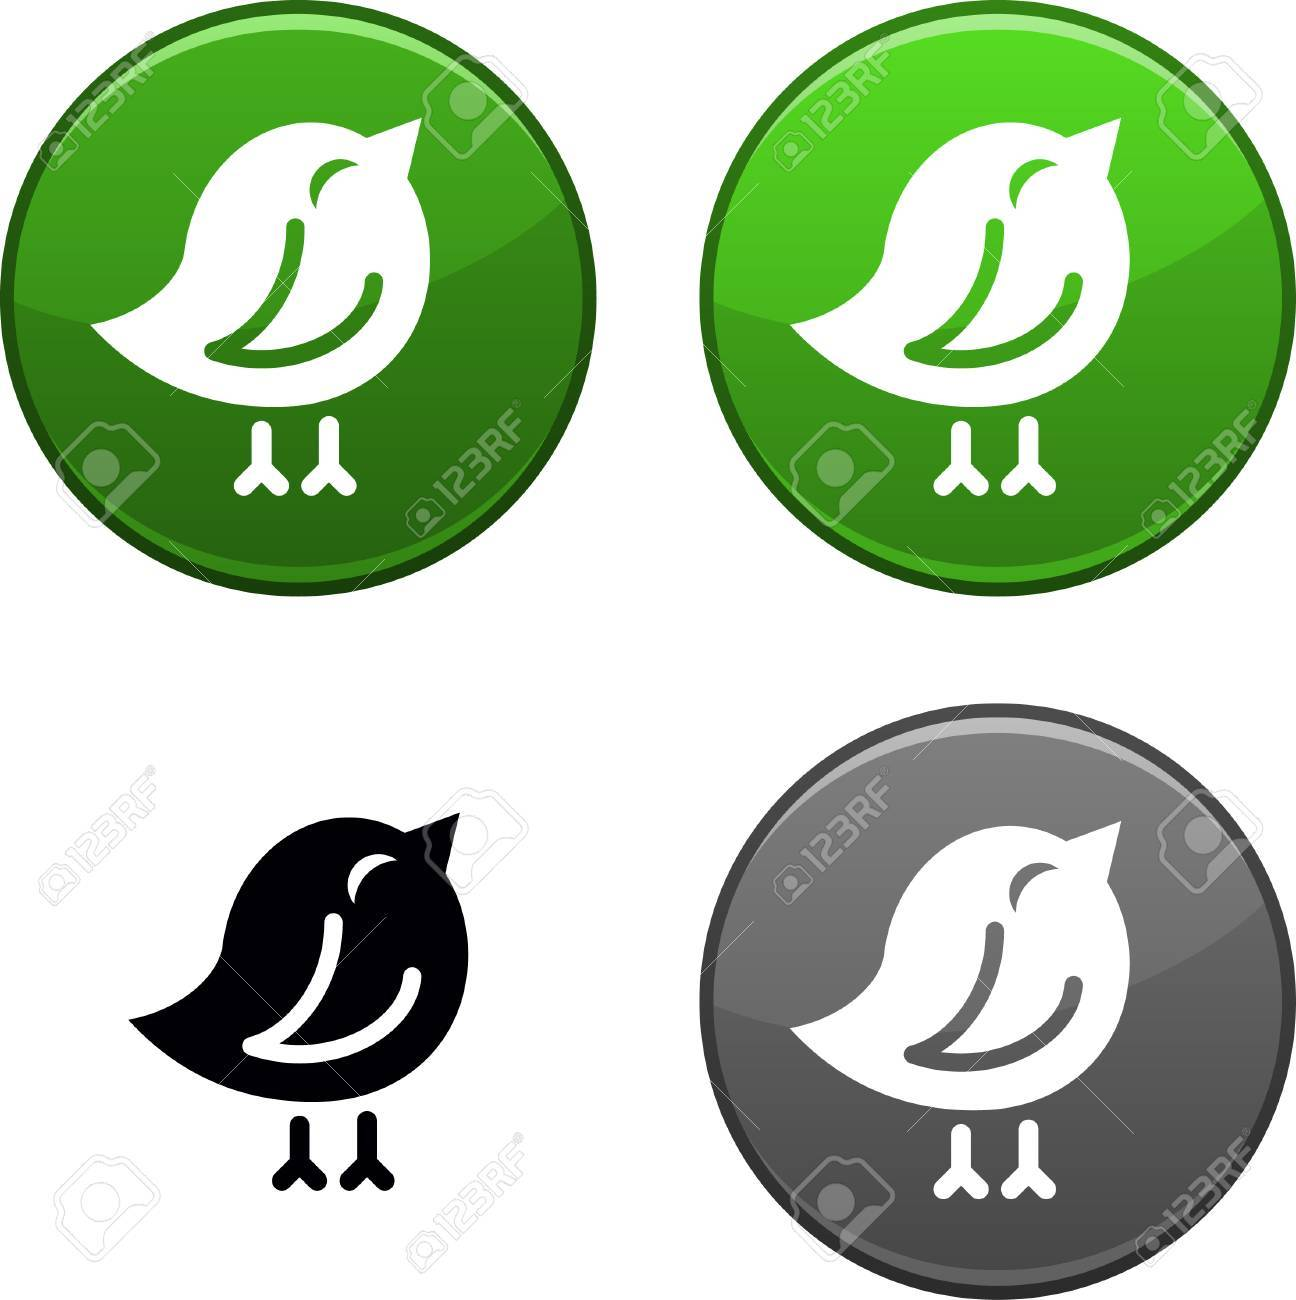 Bird round buttons. Black icon included. Stock Vector - 6749153